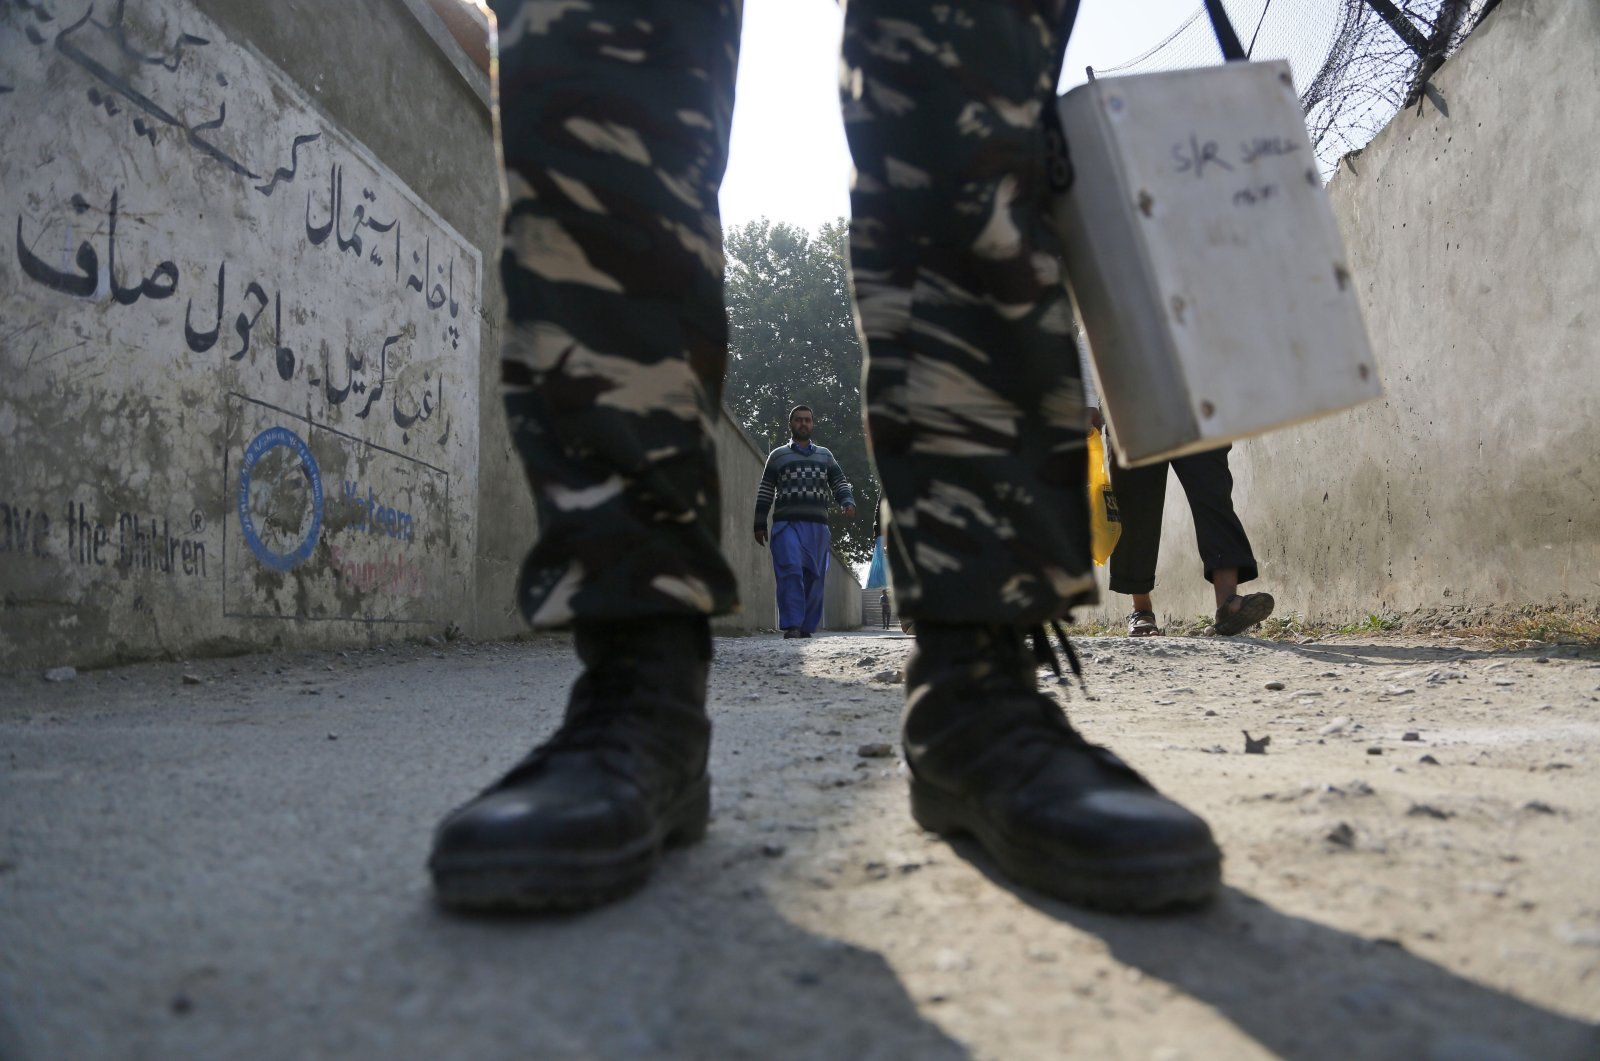 An Indian paramilitary soldier stands guard outside a polling station on the outskirts of Srinagar, Indian-controlled Kashmir, Oct. 24, 2019. (AP Photo)